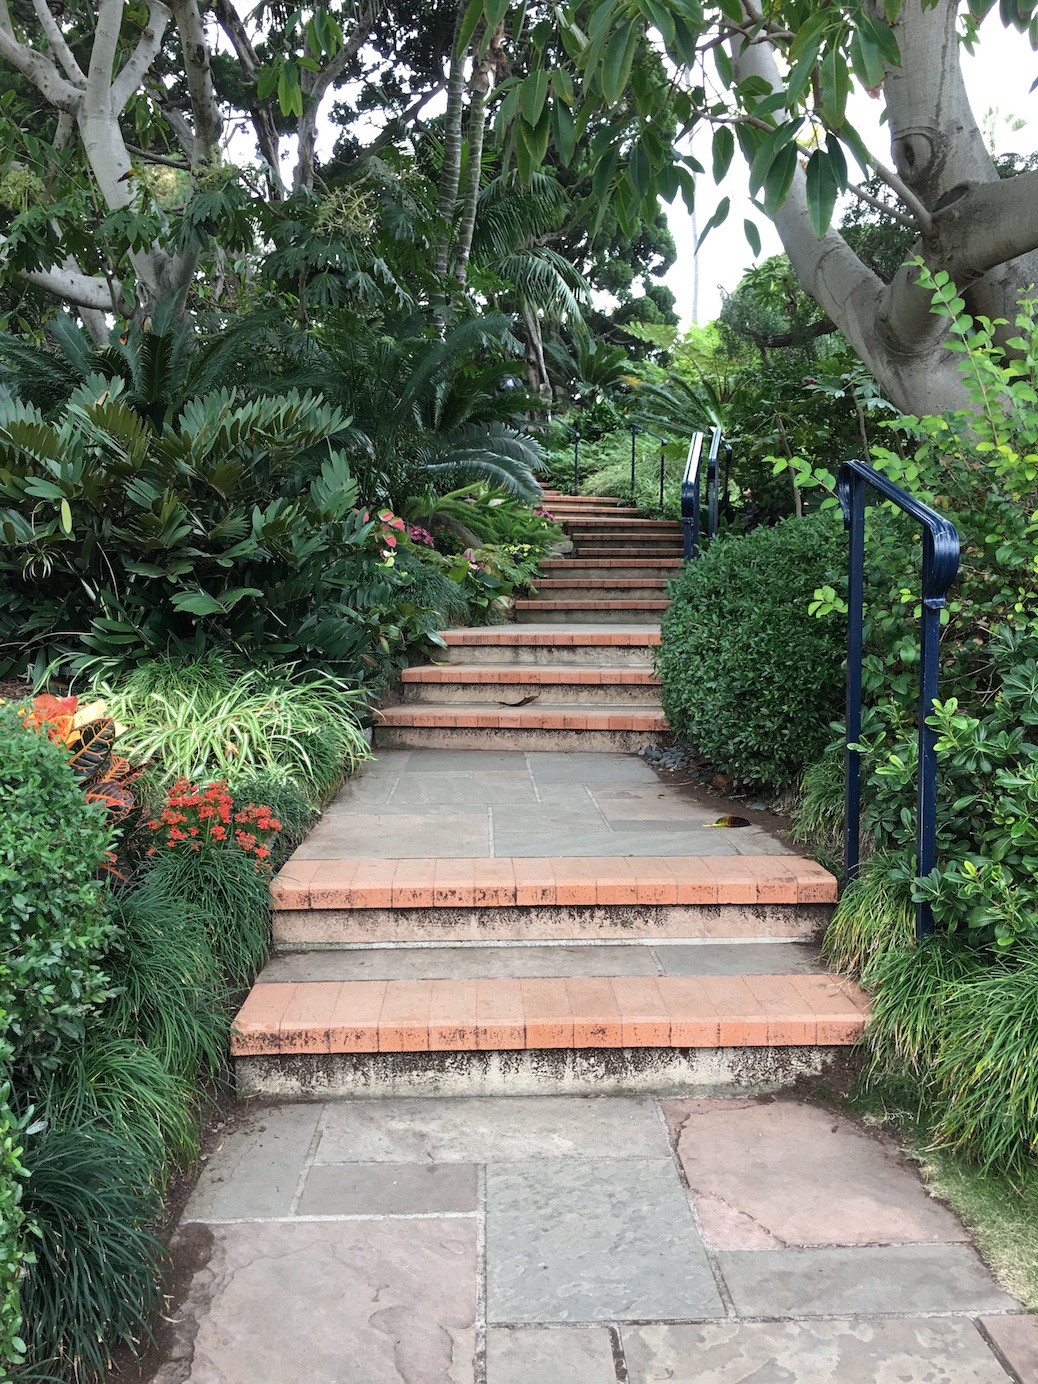 Steps to Yogananda's Hermitage in Encinitas, California, where he wrote Autobiography of a Yogi